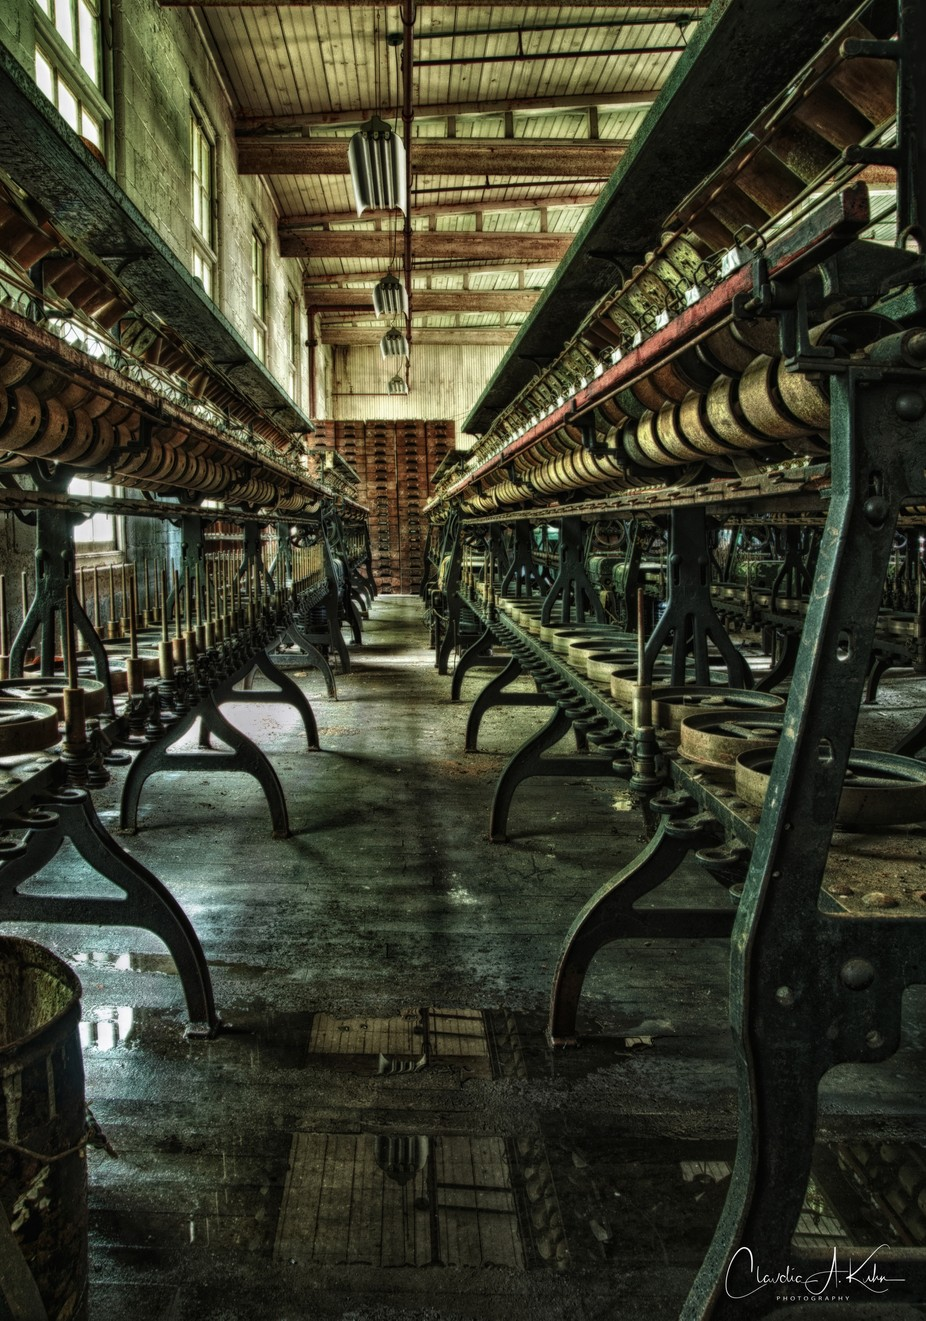 Klotz Throwing Mill by ClaudiaKuhn - Warehouses Photo Contest